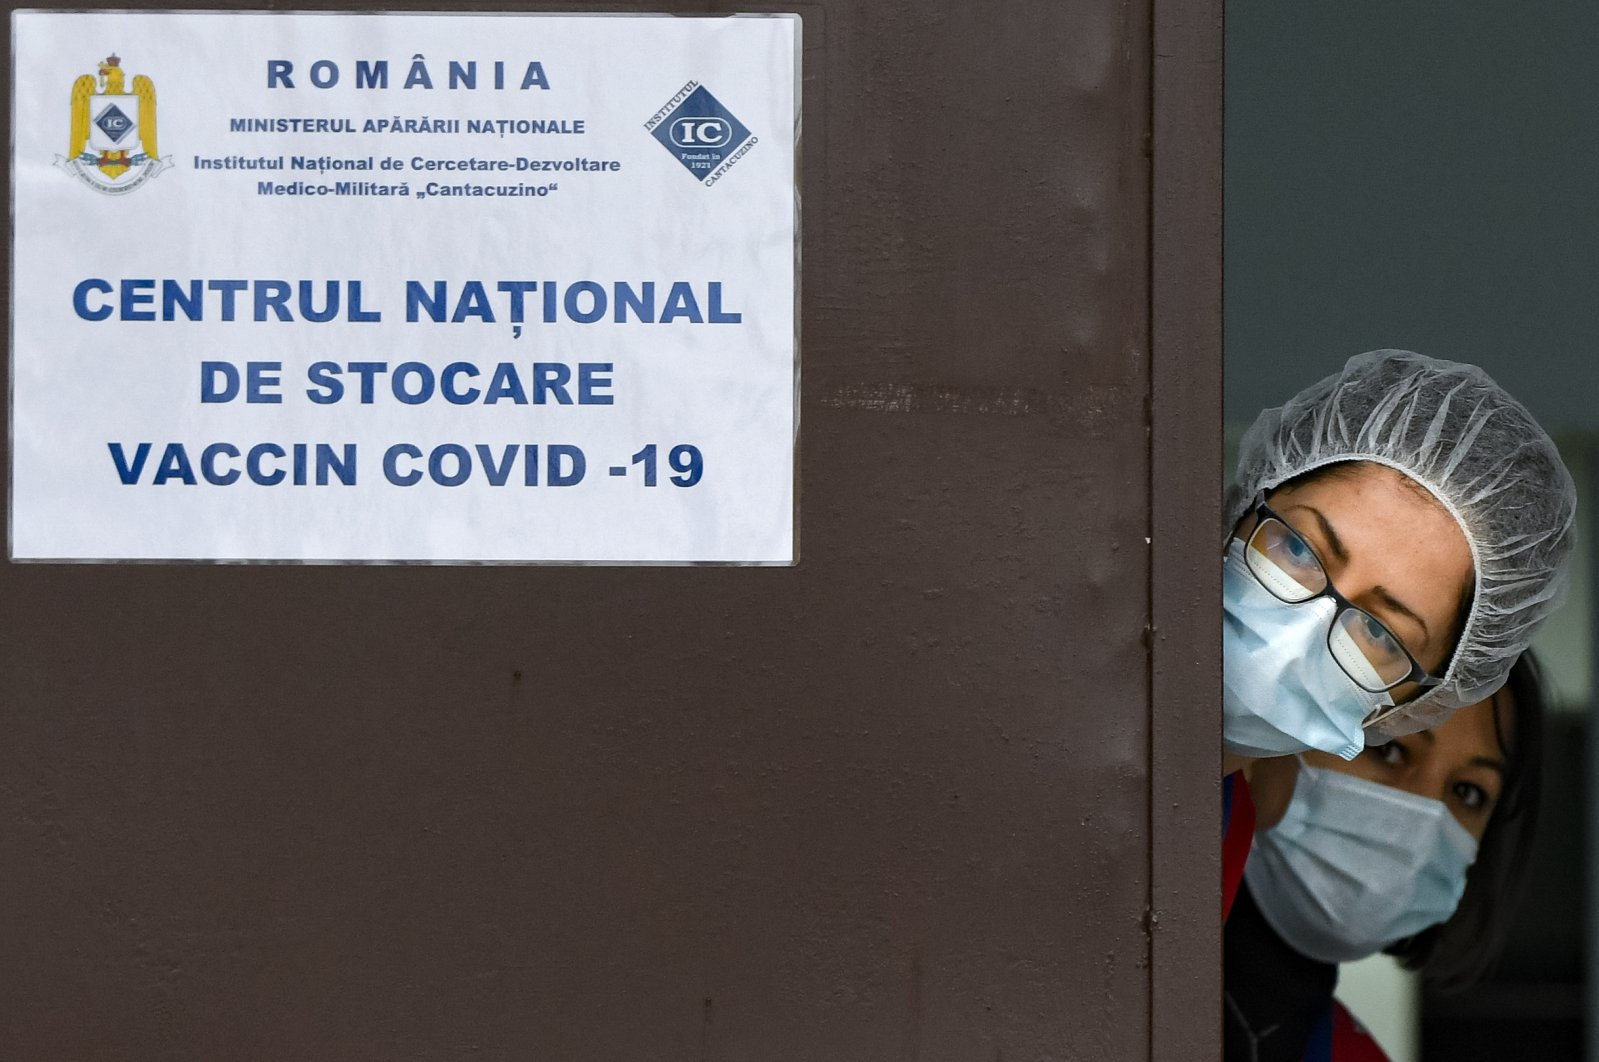 Medical staff peer from behind a door at the National Center for Storage of the COVID-19 Vaccine in Bucharest, Romania on Dec. 18, 2020. (AP Photo)